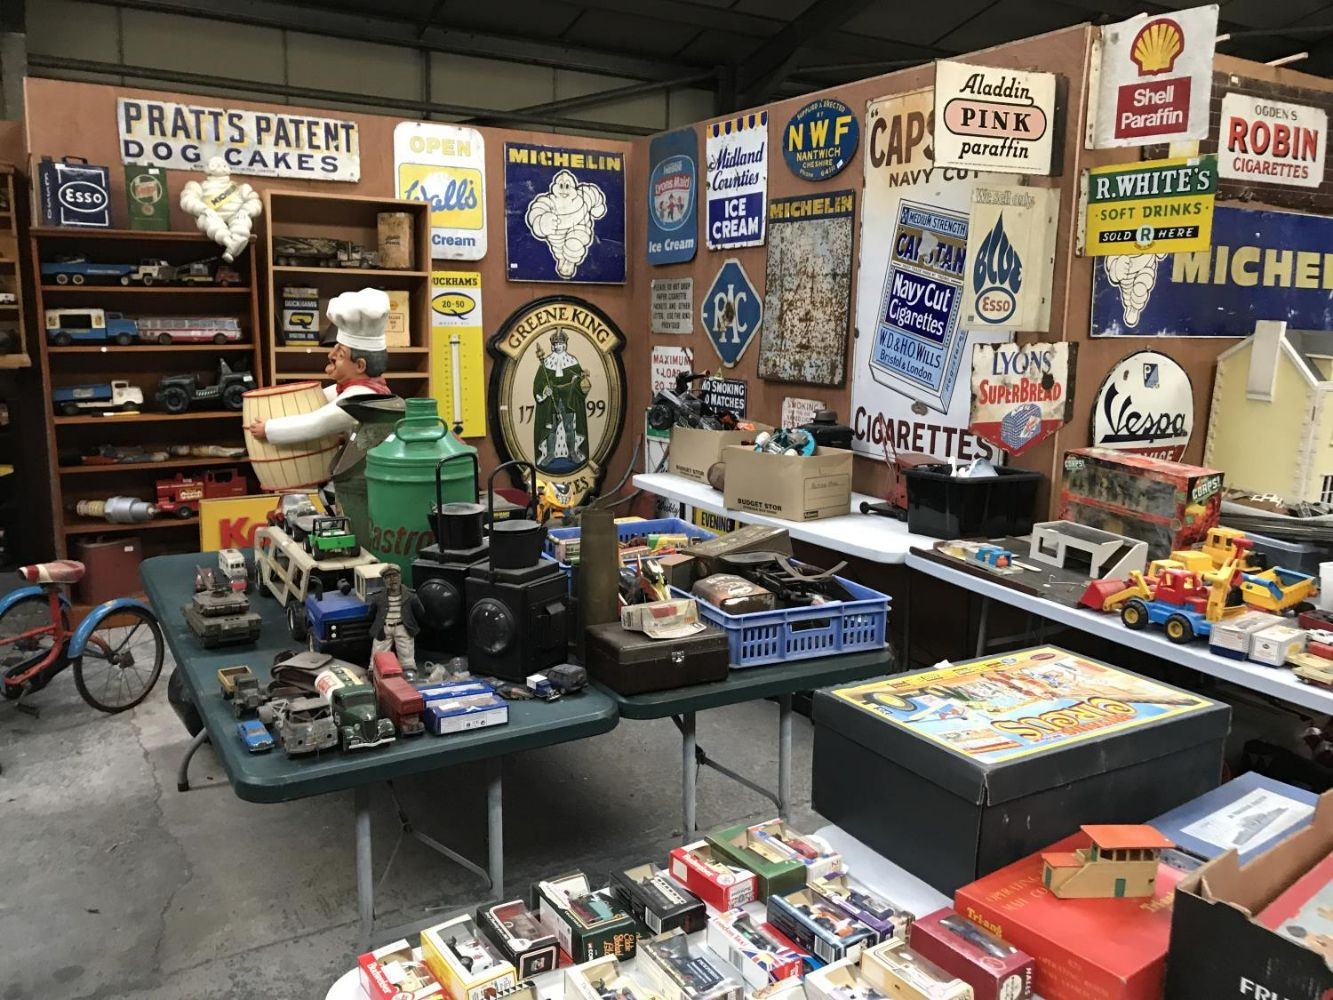 Two Day Auction Of Collectables, Antiques, Furniture, Vintage Items, including a section for Coins and Stamps - COLLECTION BY APPOINTMENT